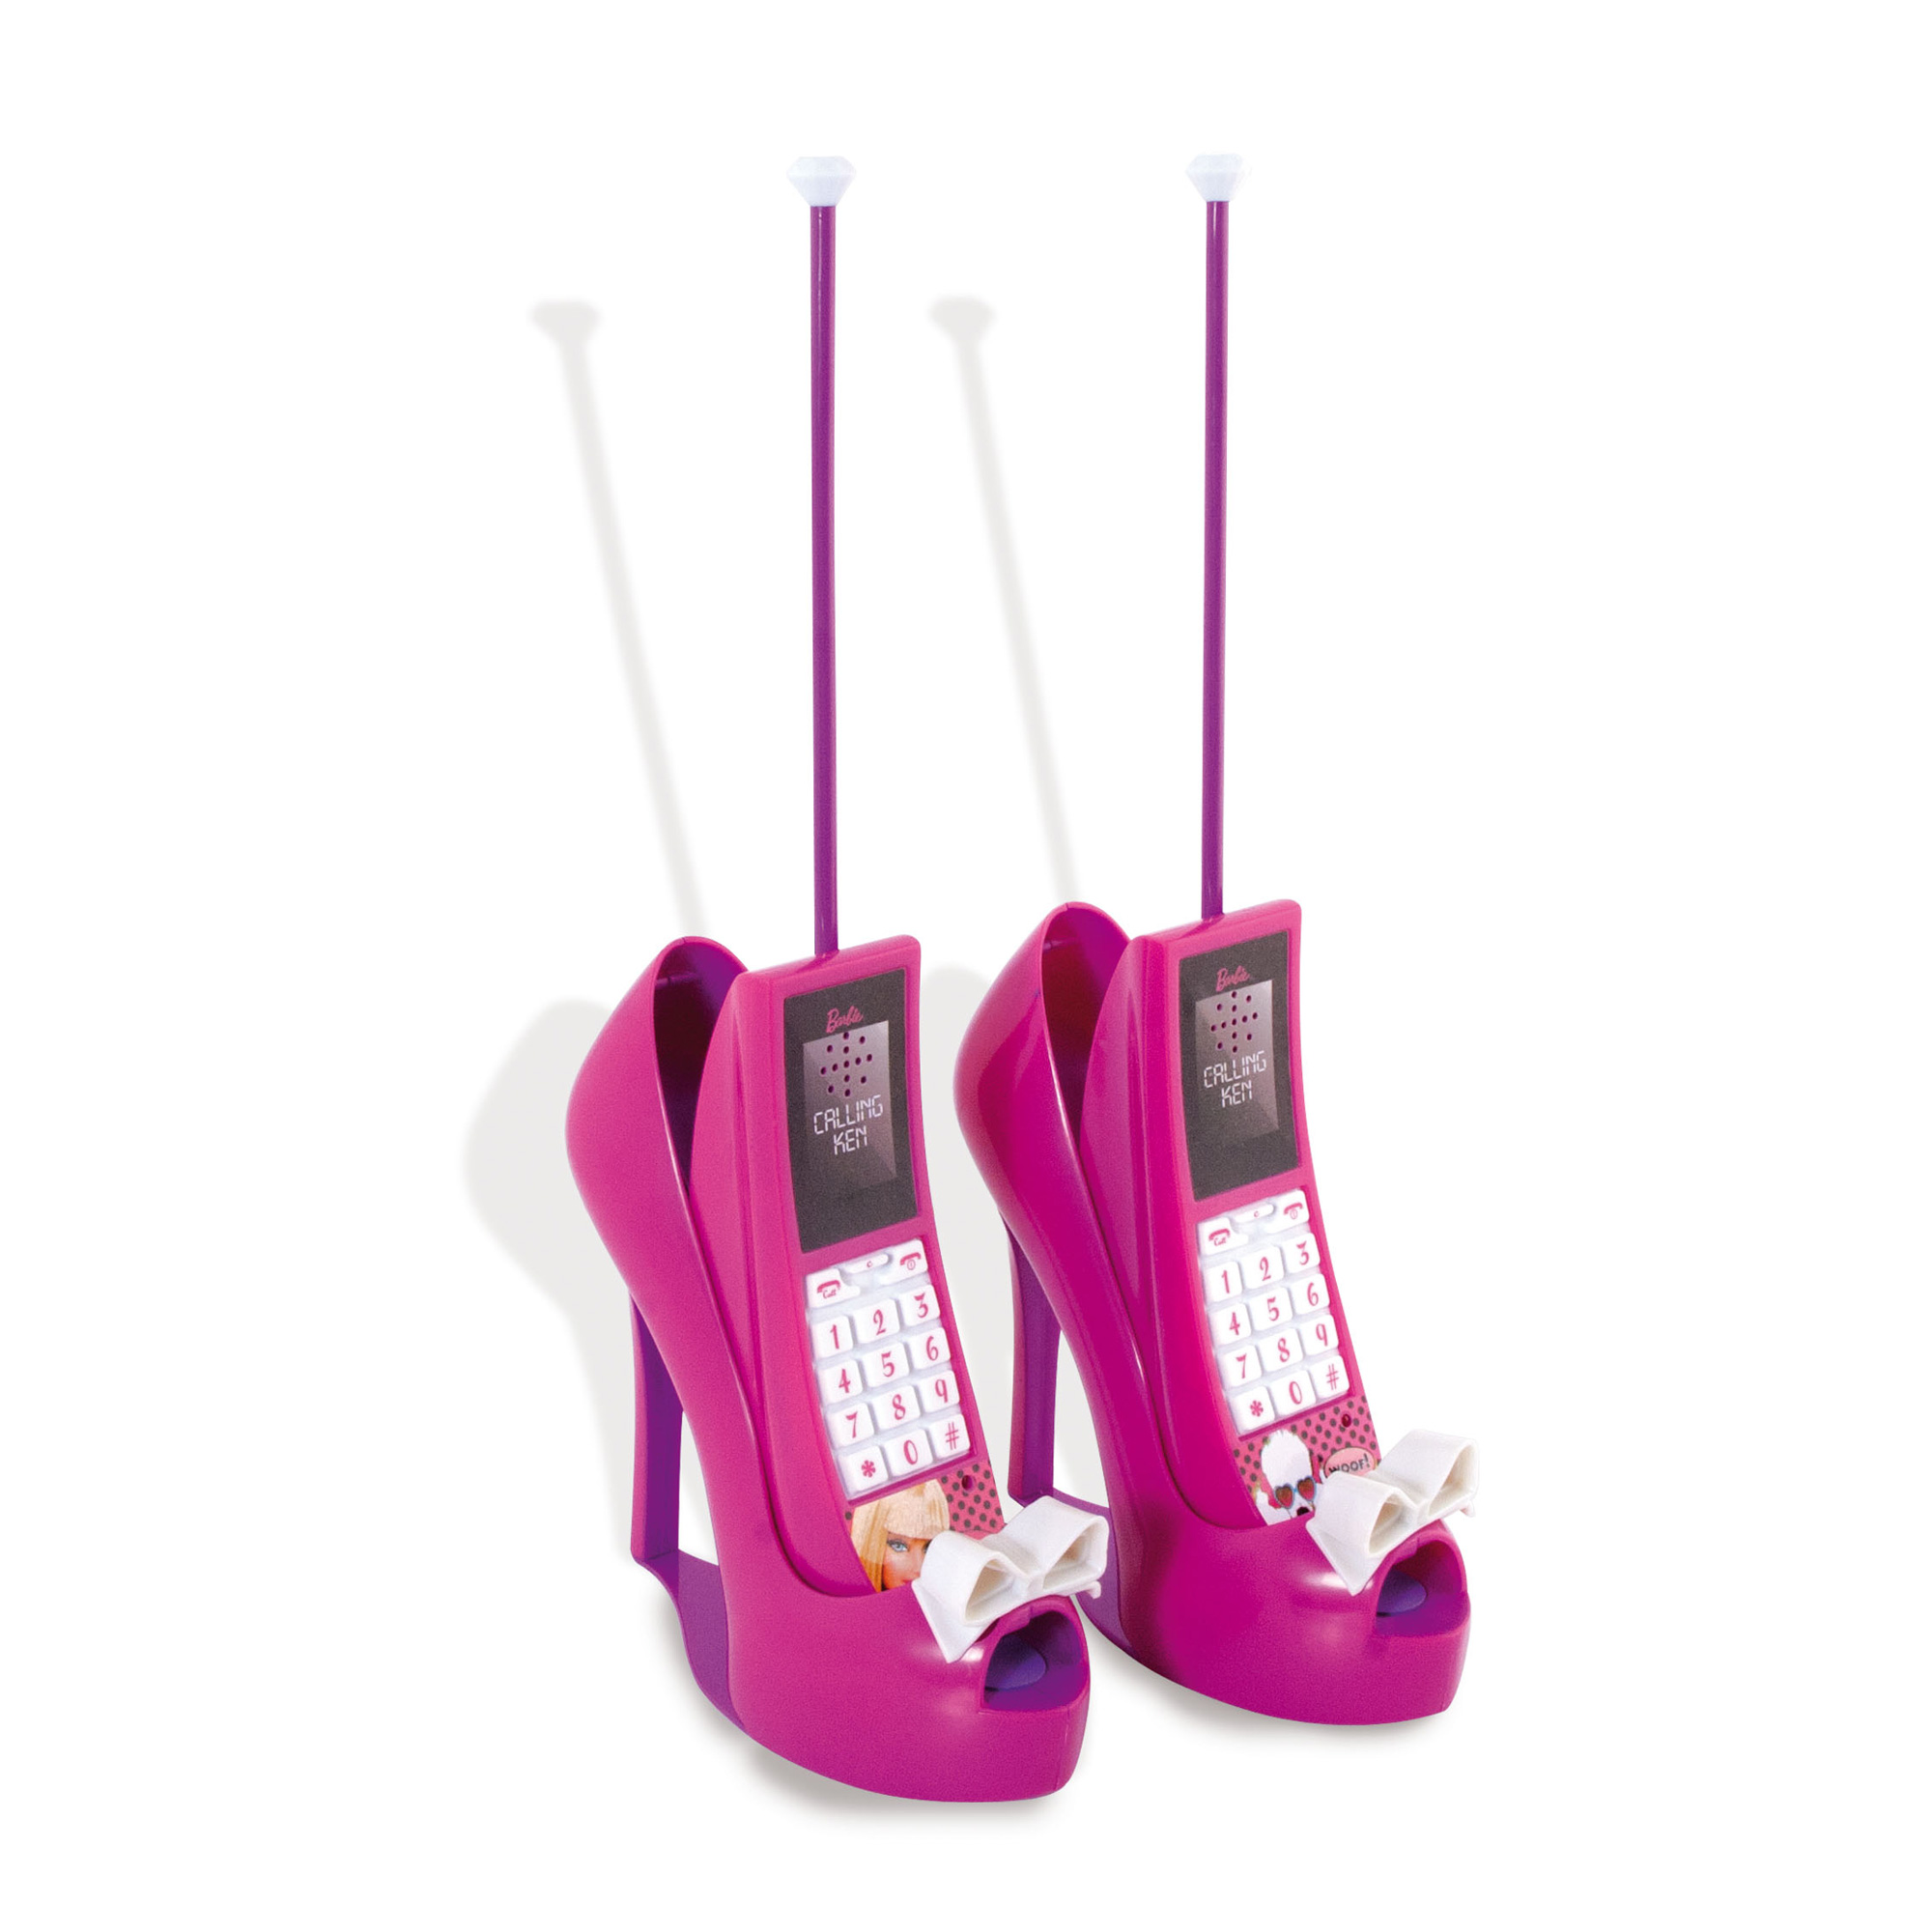 Barbie Intercom Phone